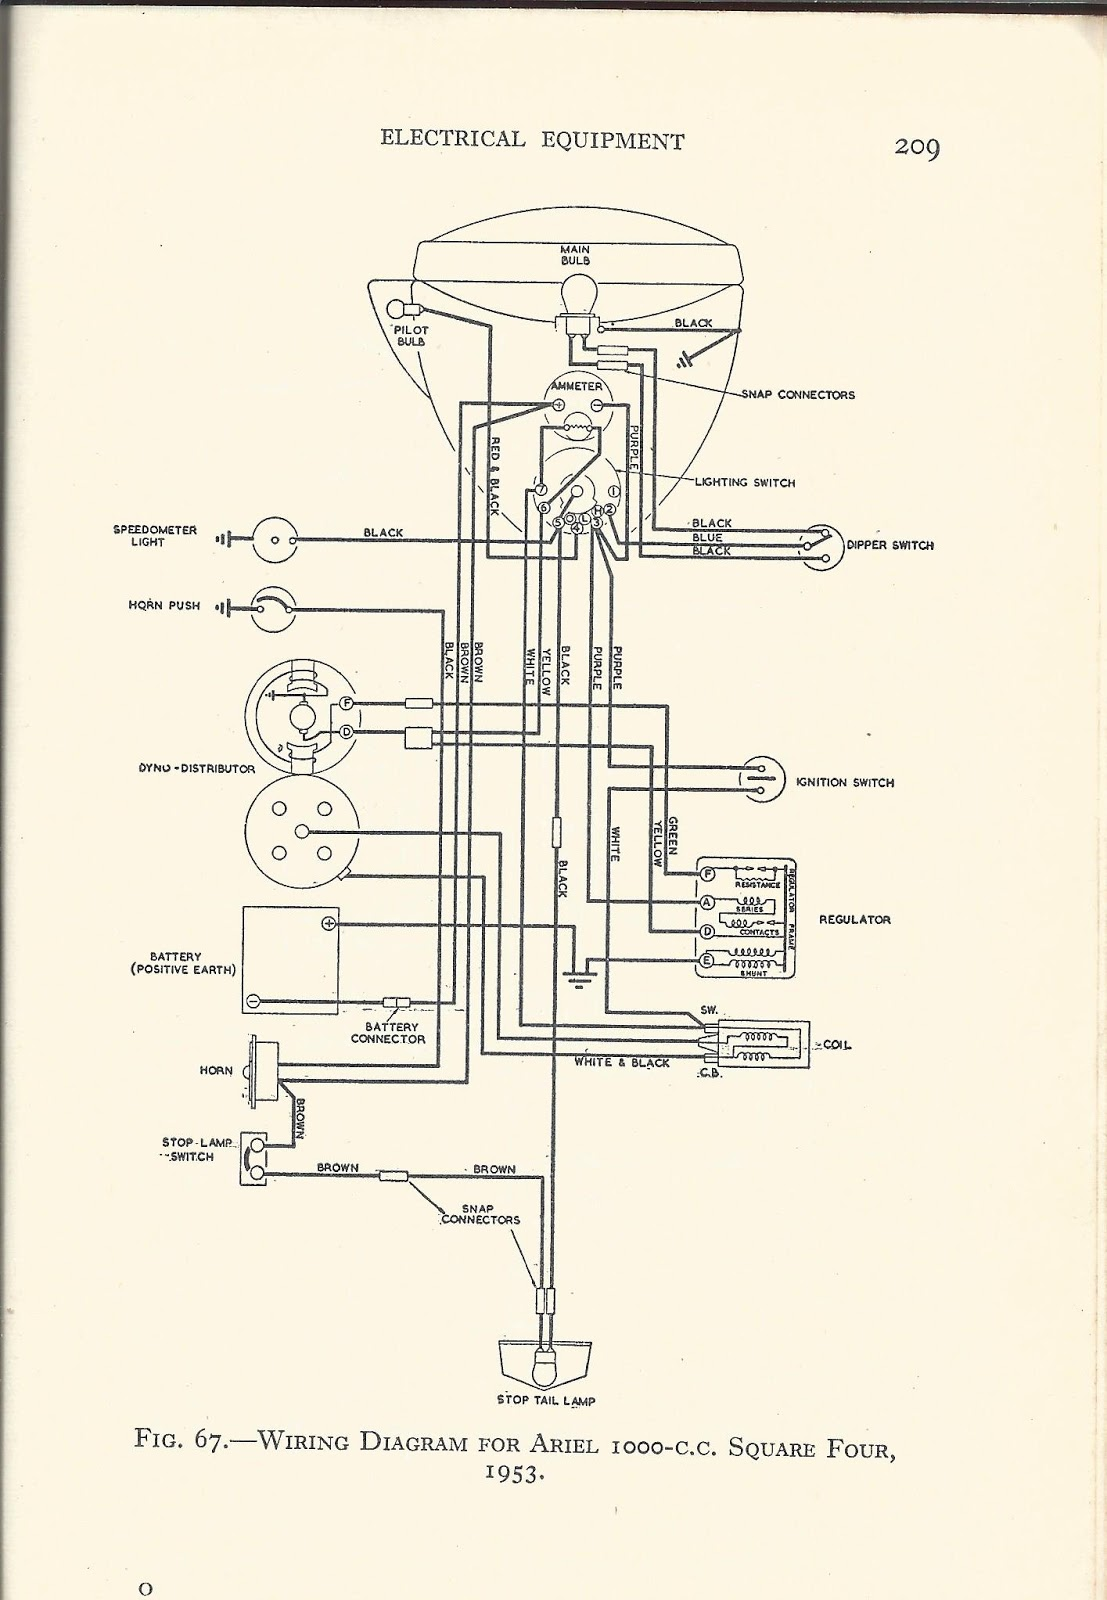 Ariel Motorcycle Wiring Diagram - Technical Diagrams on